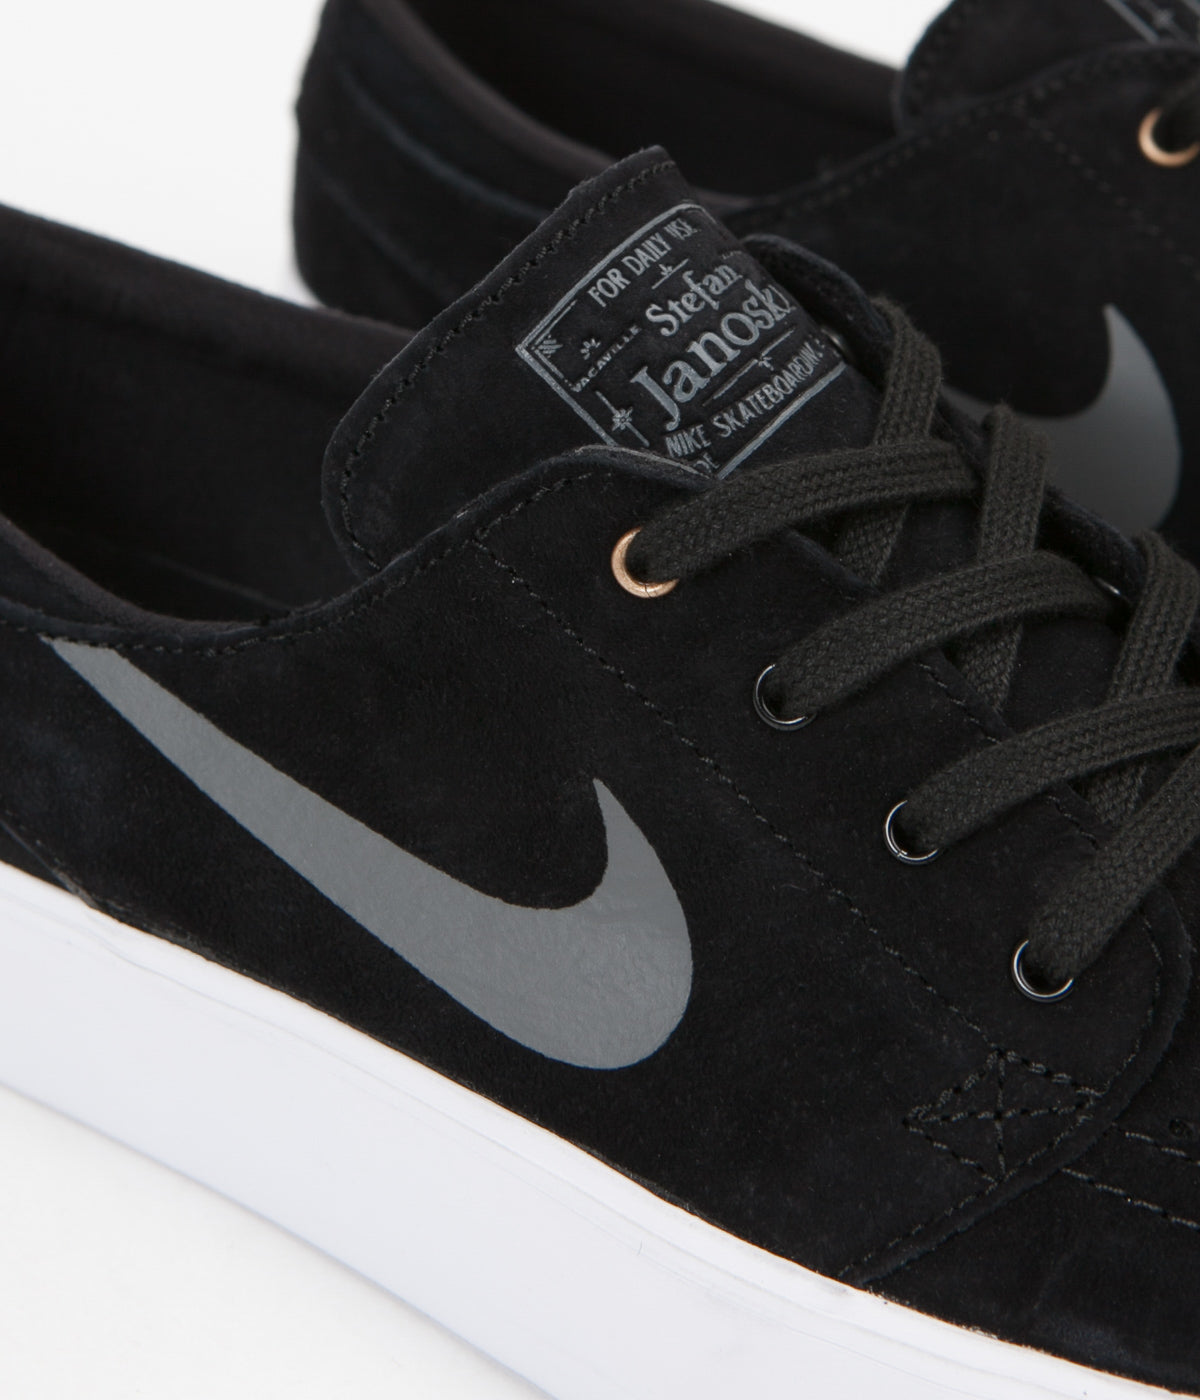 ... Nike SB Stefan Janoski HT Shoes - Black   Dark Grey - Metallic Gold -  White ... 9c830f7c446d